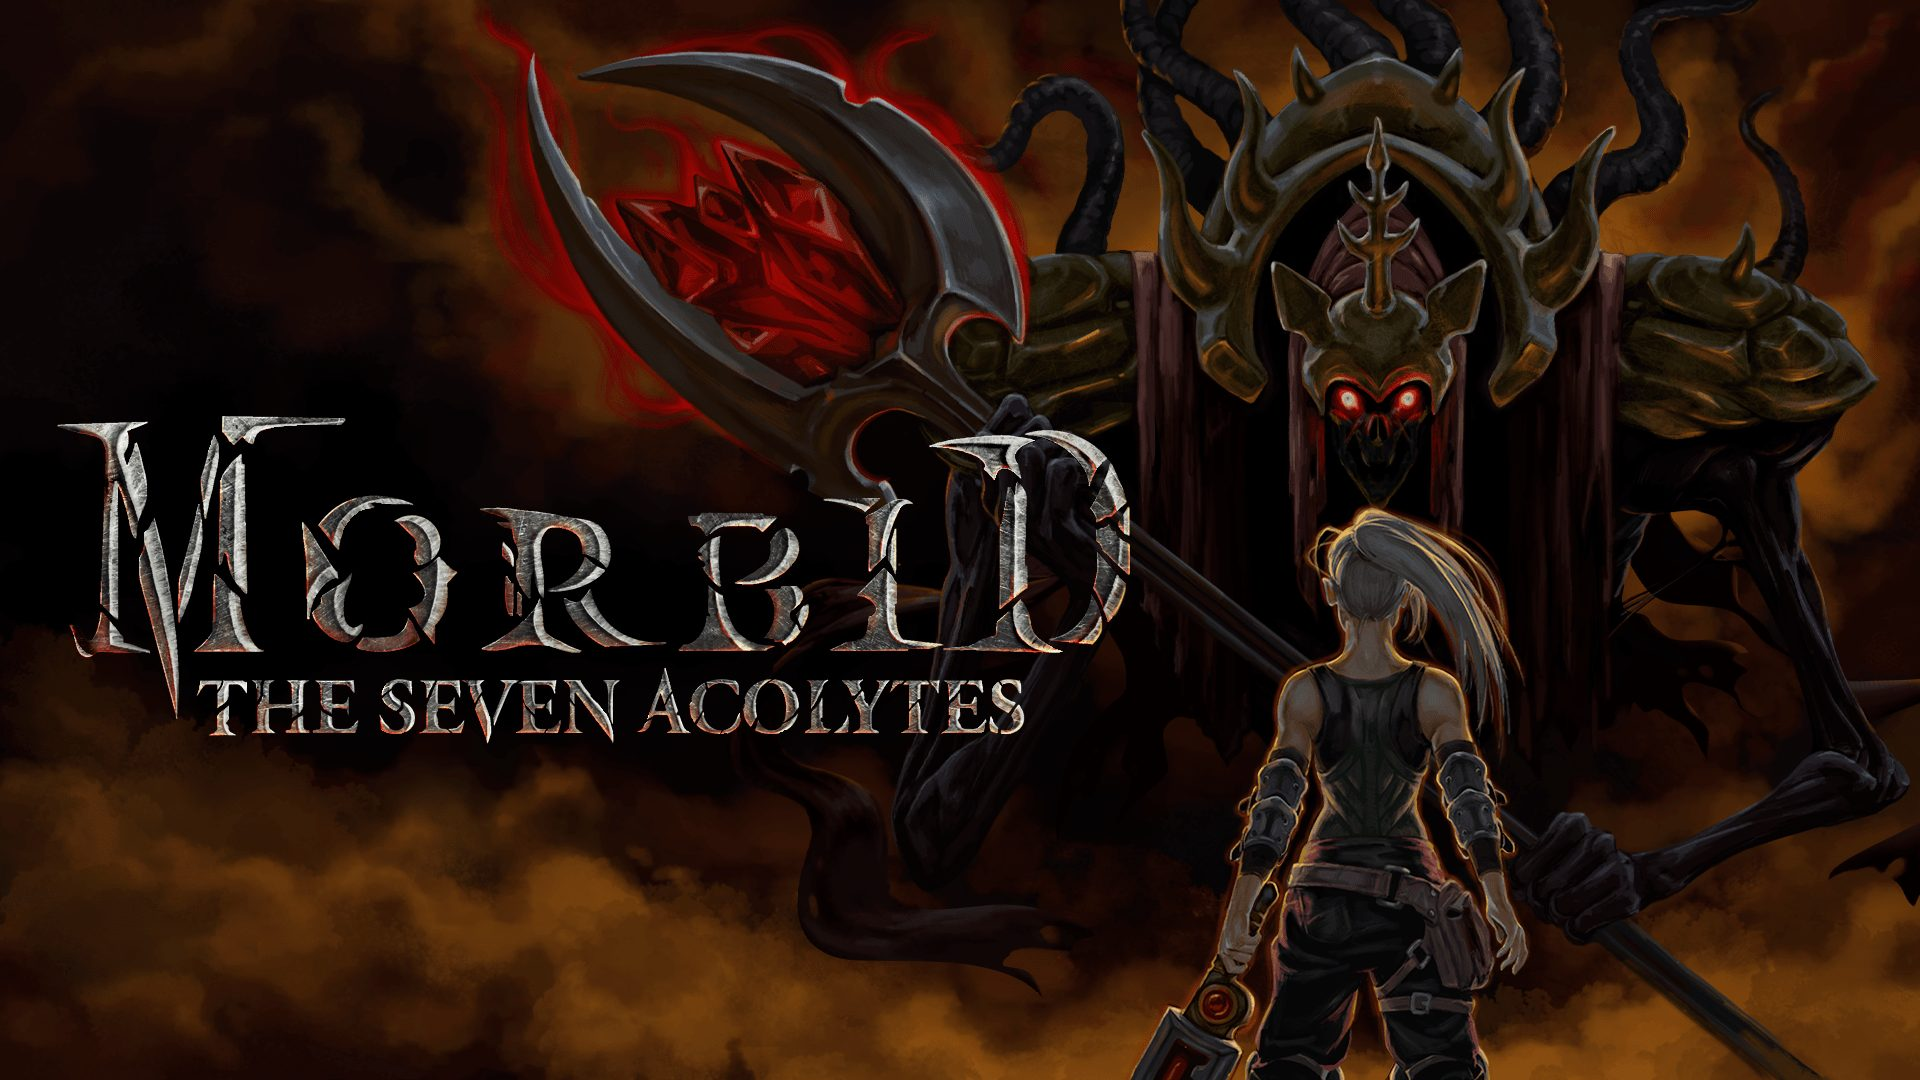 Morbid: The Seven Acolytes title image.